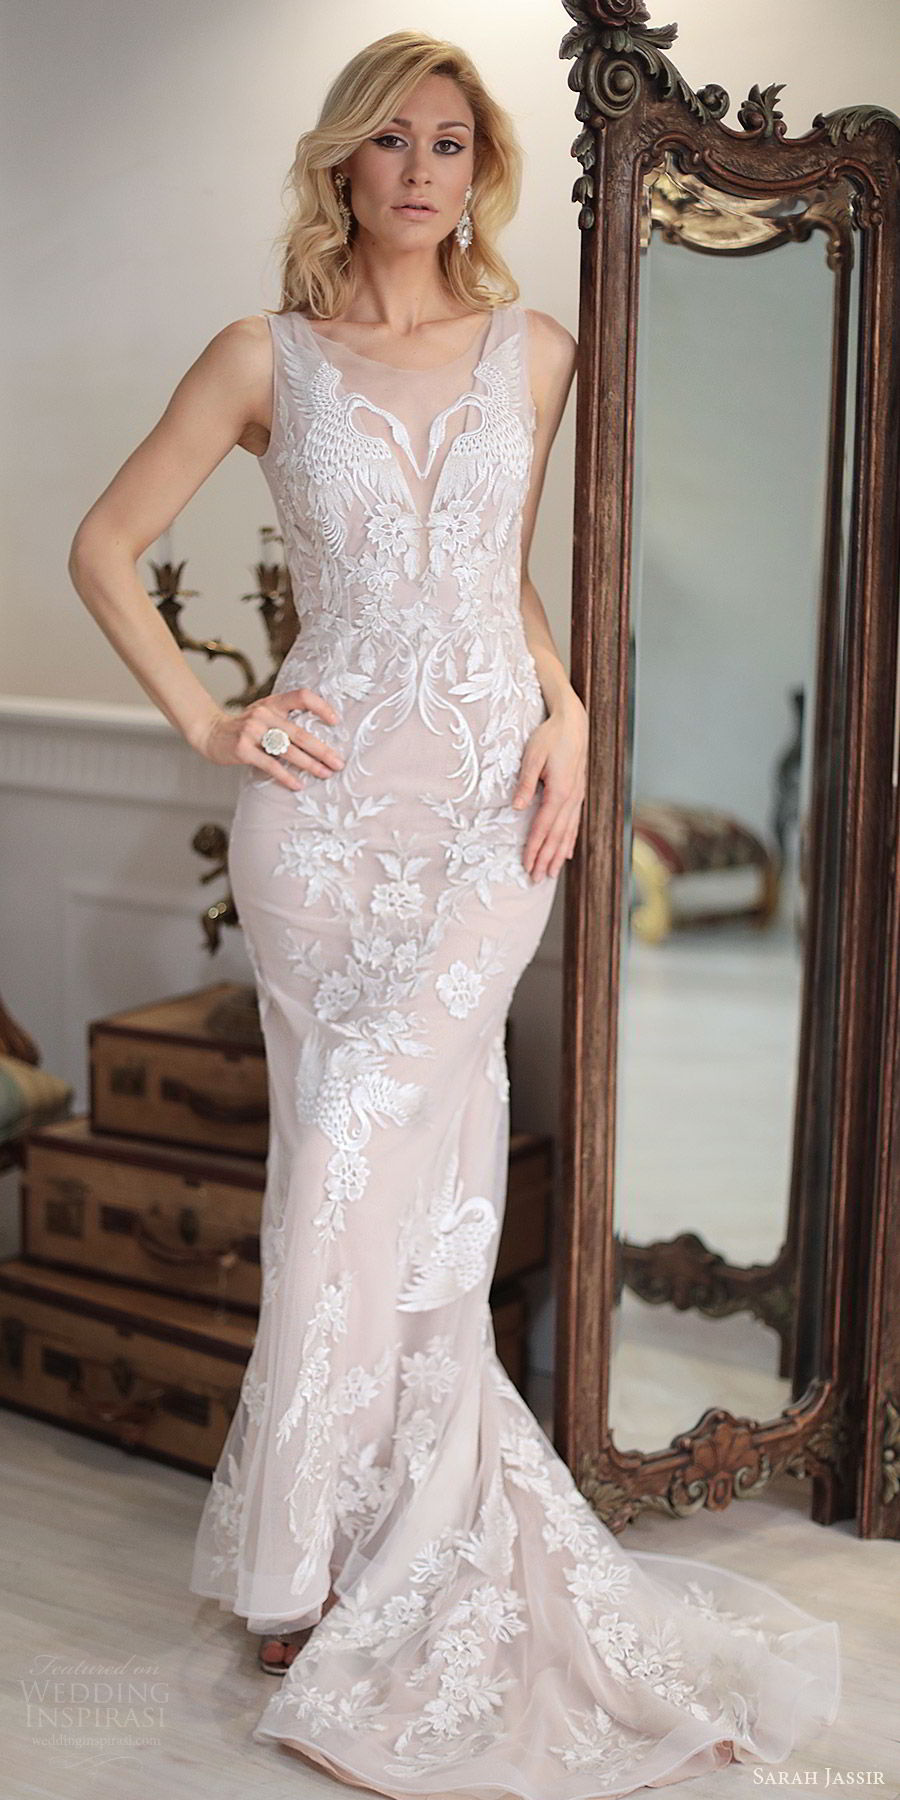 sarah jassir bridal 2018 sleeveless illusion straps sweetheart heavily embellished lace sheath wedding dress (swan) mv blush sweep train modern elegant